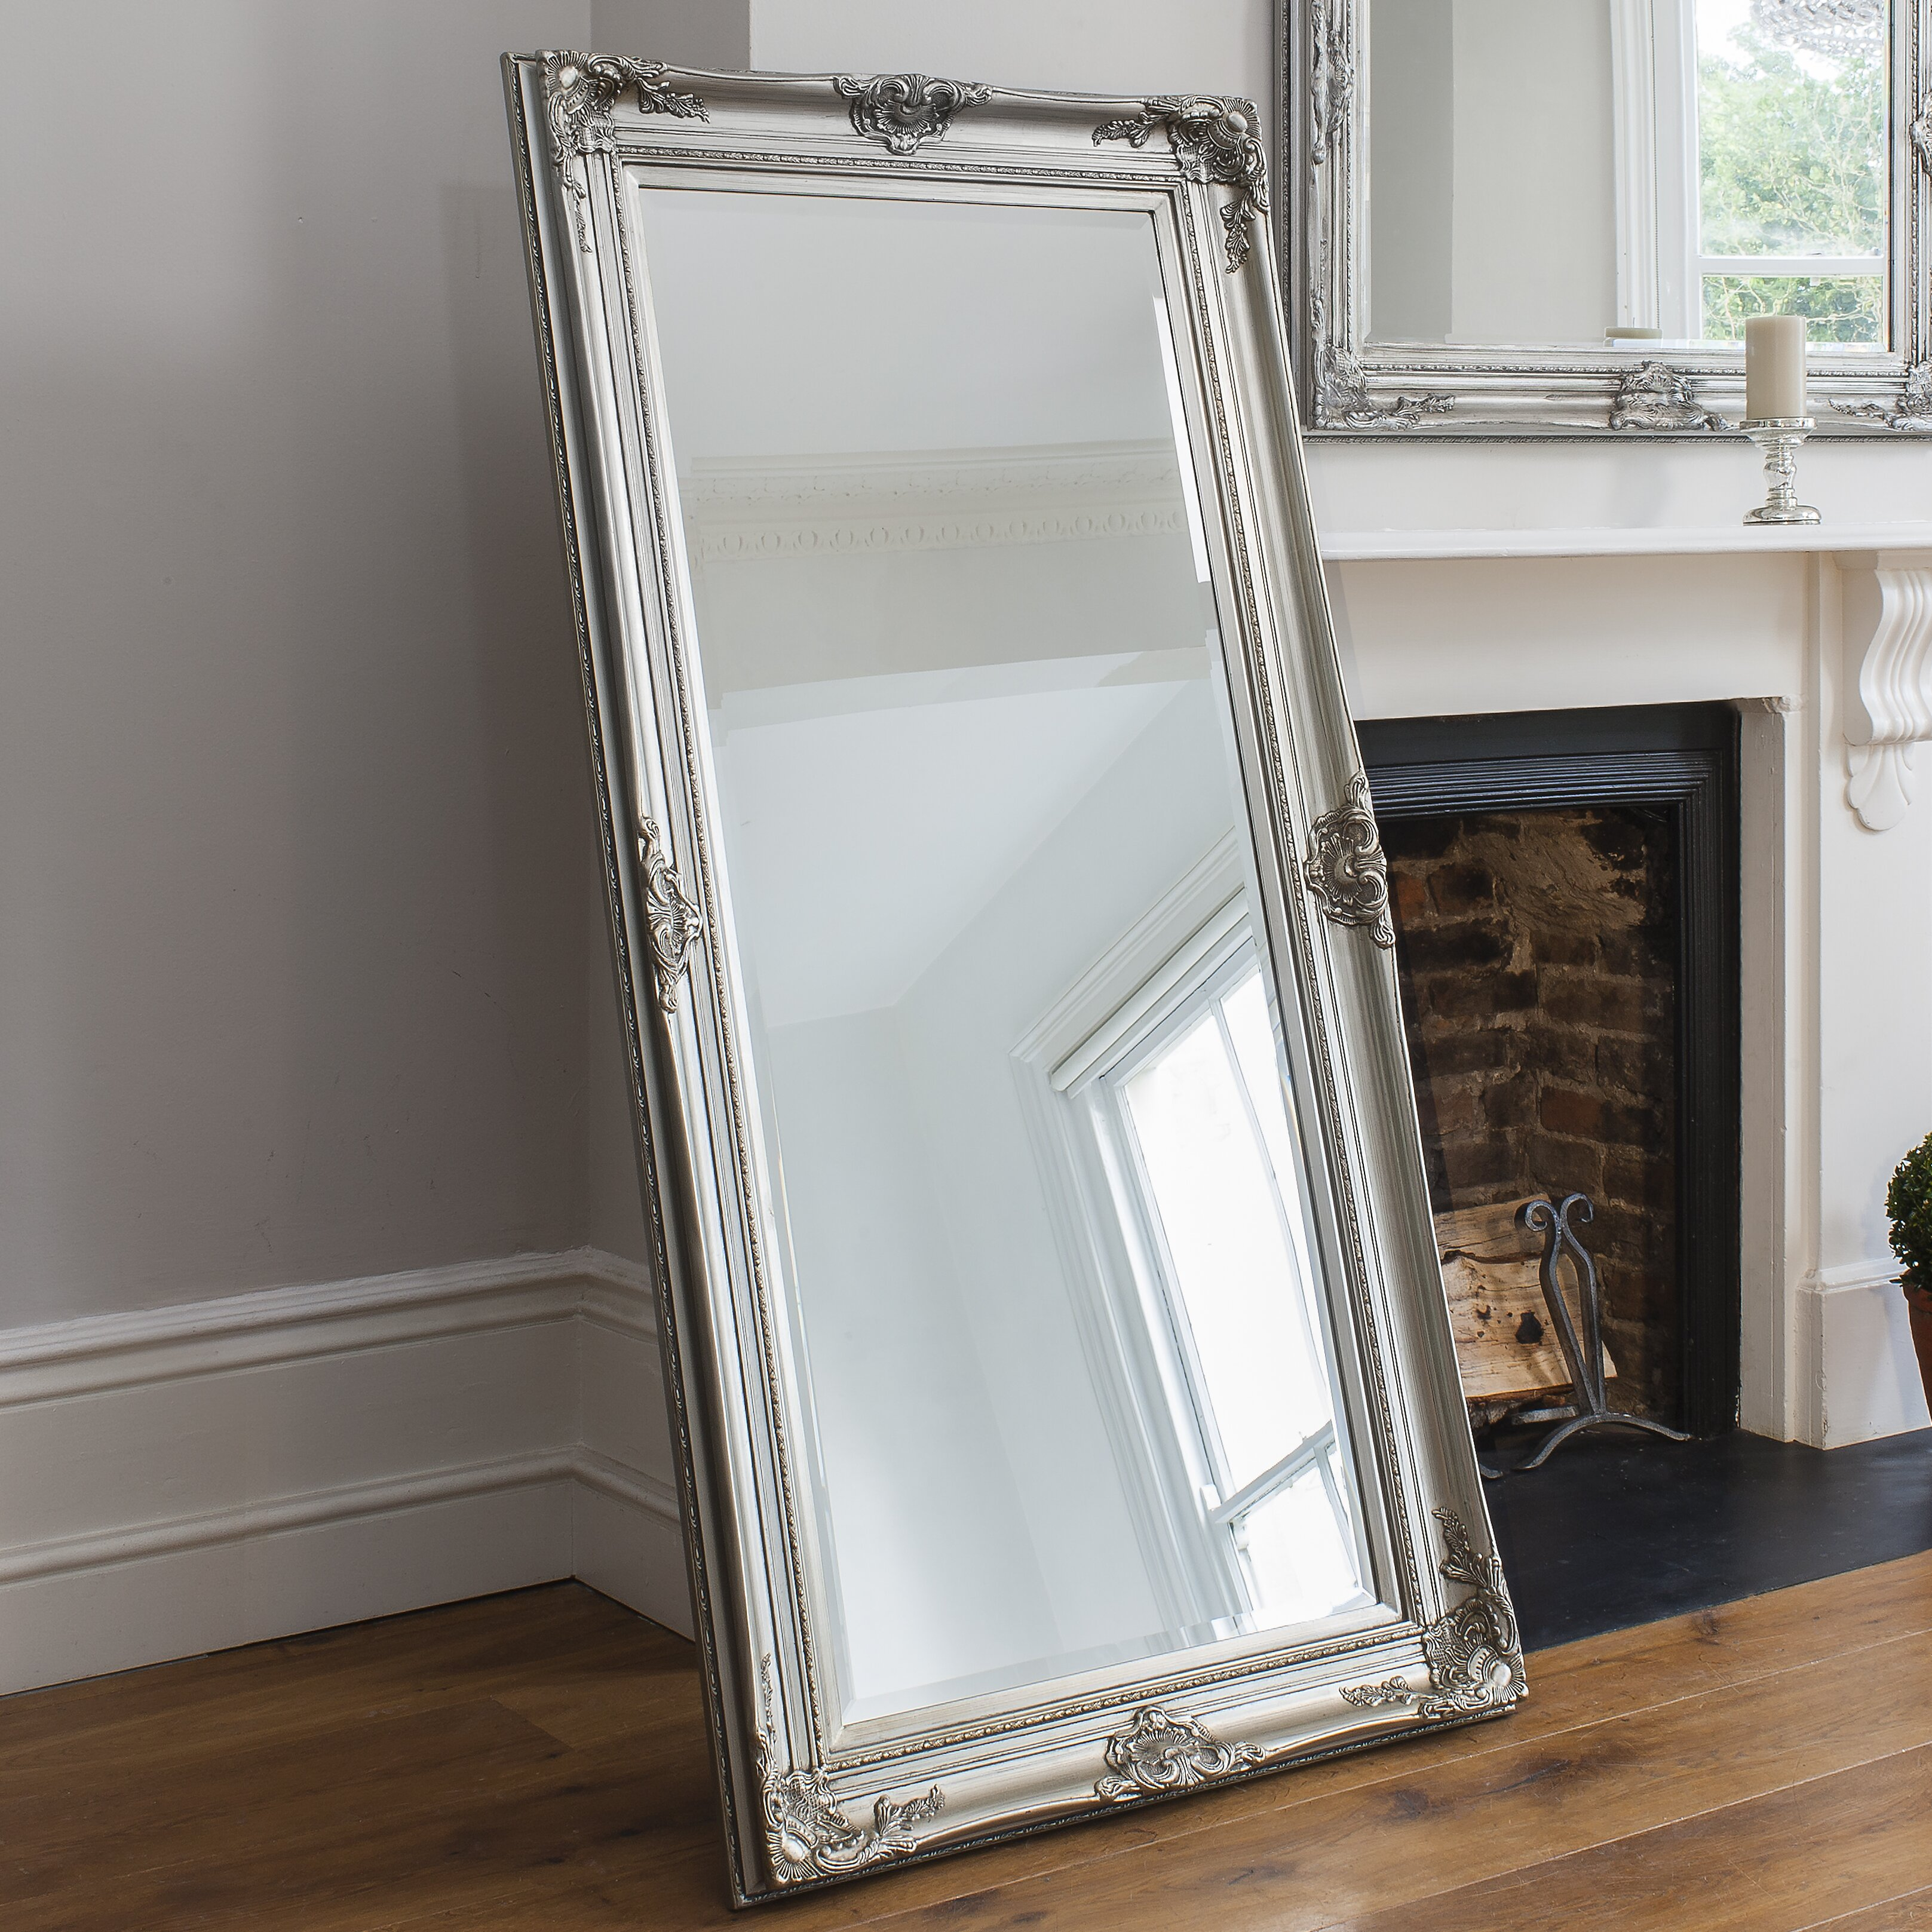 Gallery harrow full length mirror reviews wayfair uk for Full length window mirror